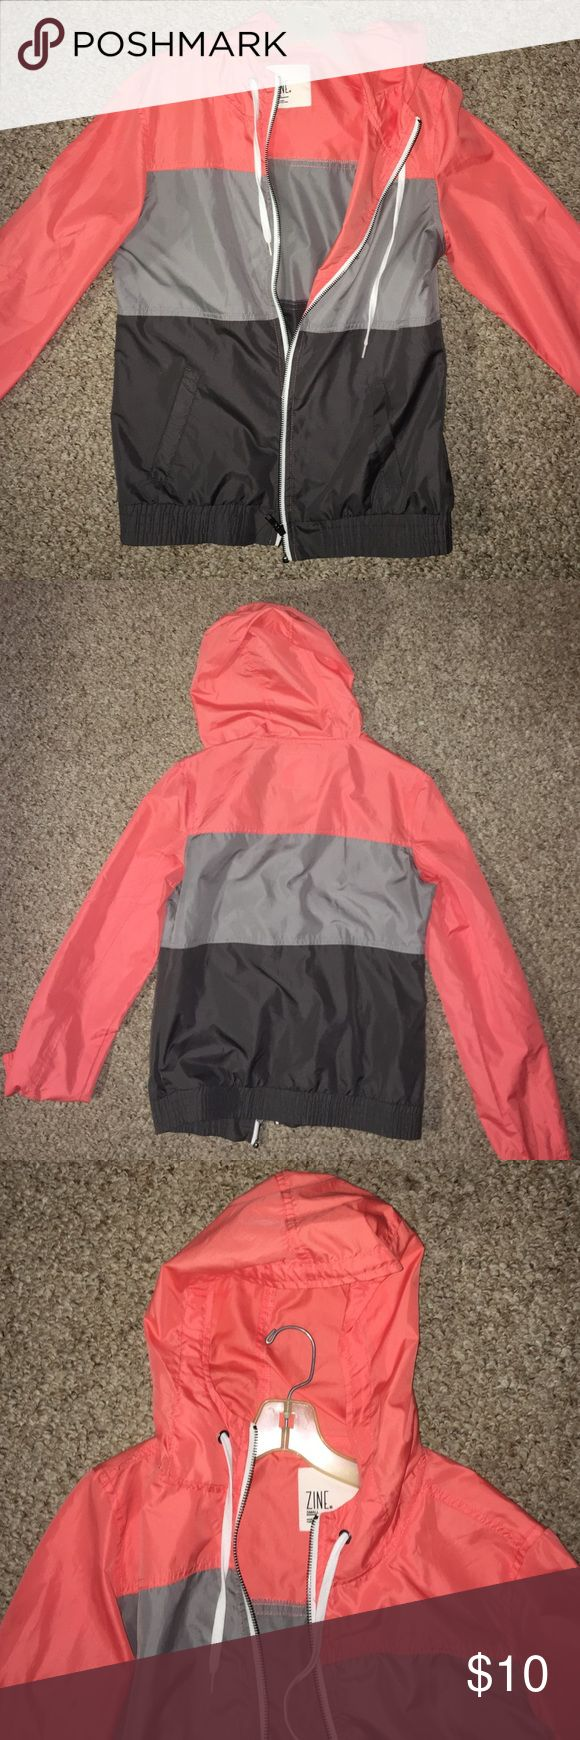 Cute rain jacket! Stylish rain jacket/ wind breaker. Only worn once!! In great condition Zine Jackets & Coats